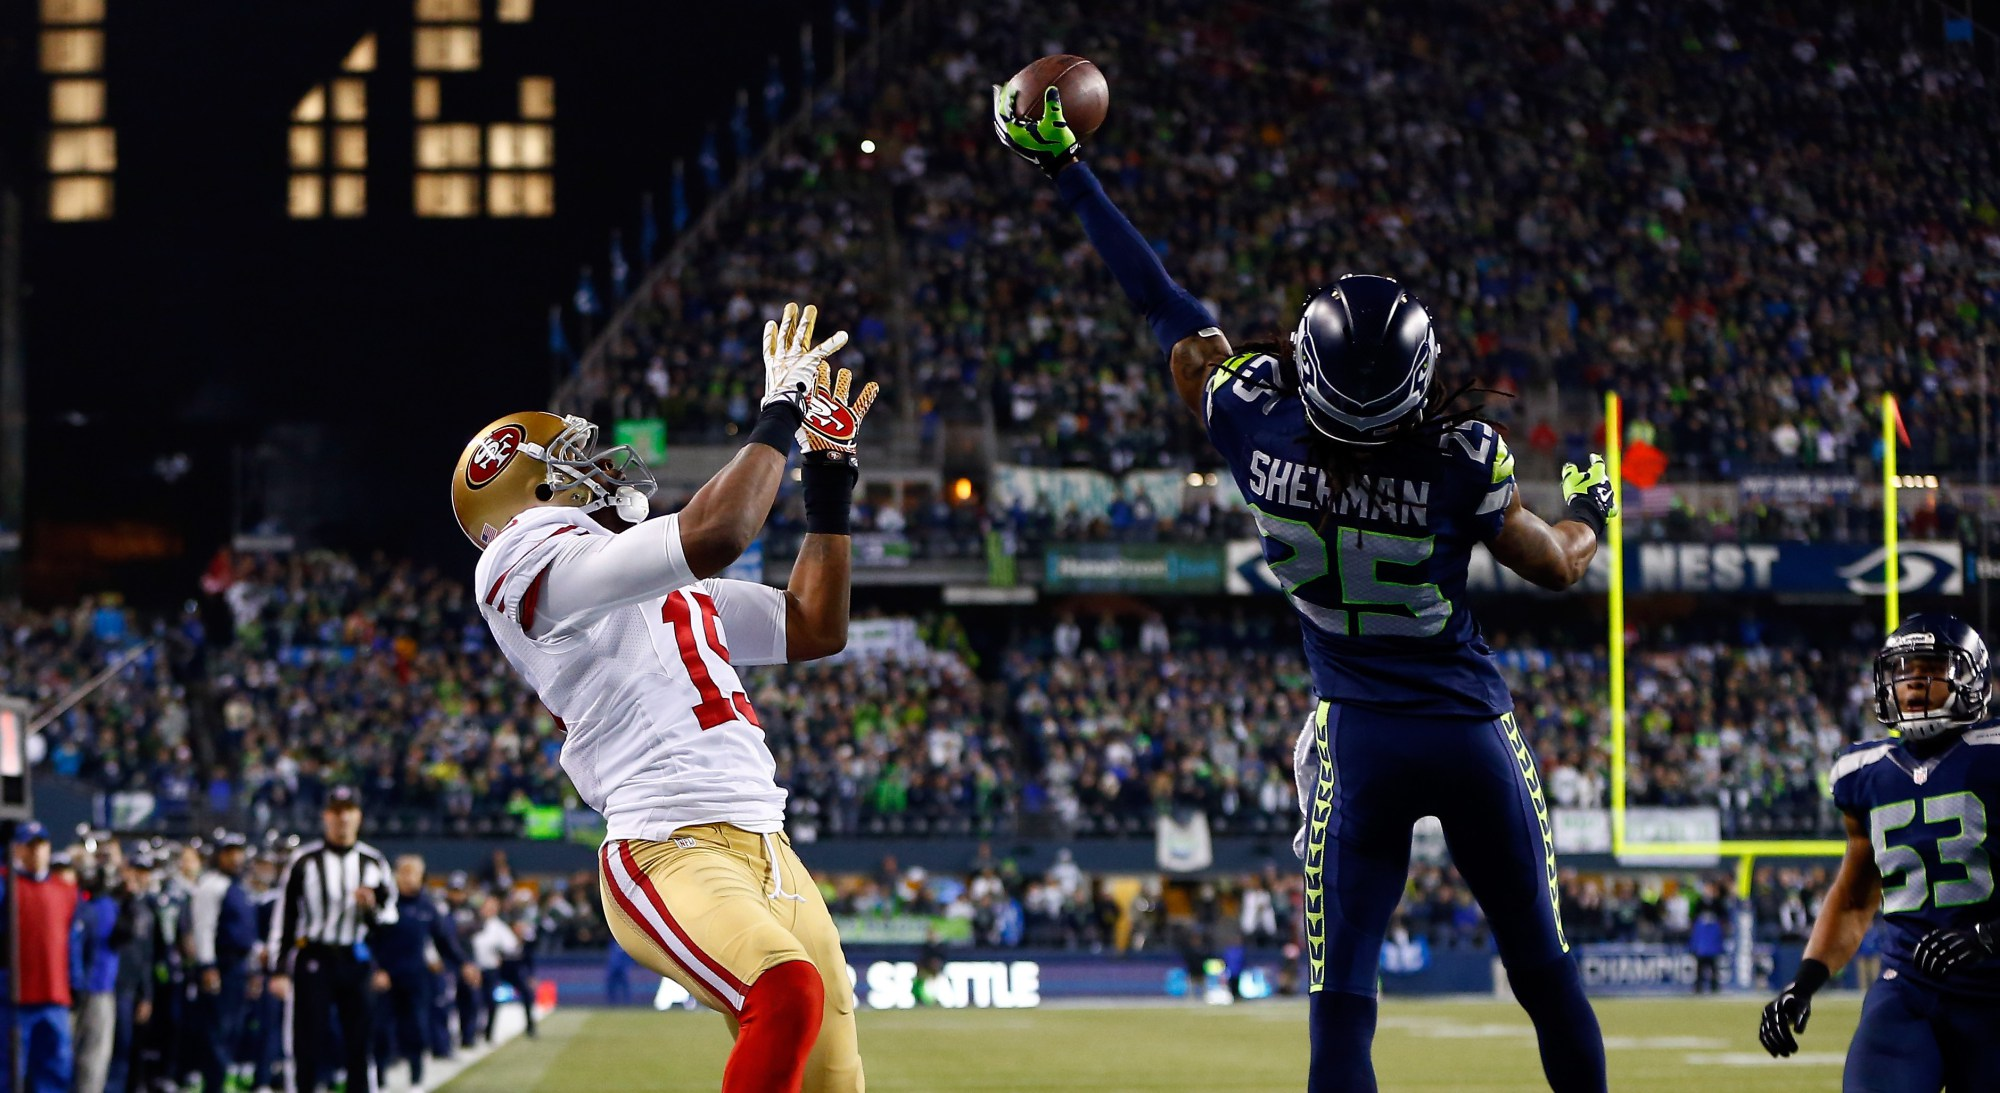 Top 10 HD Richard Sherman Wallpaper 2000x1093